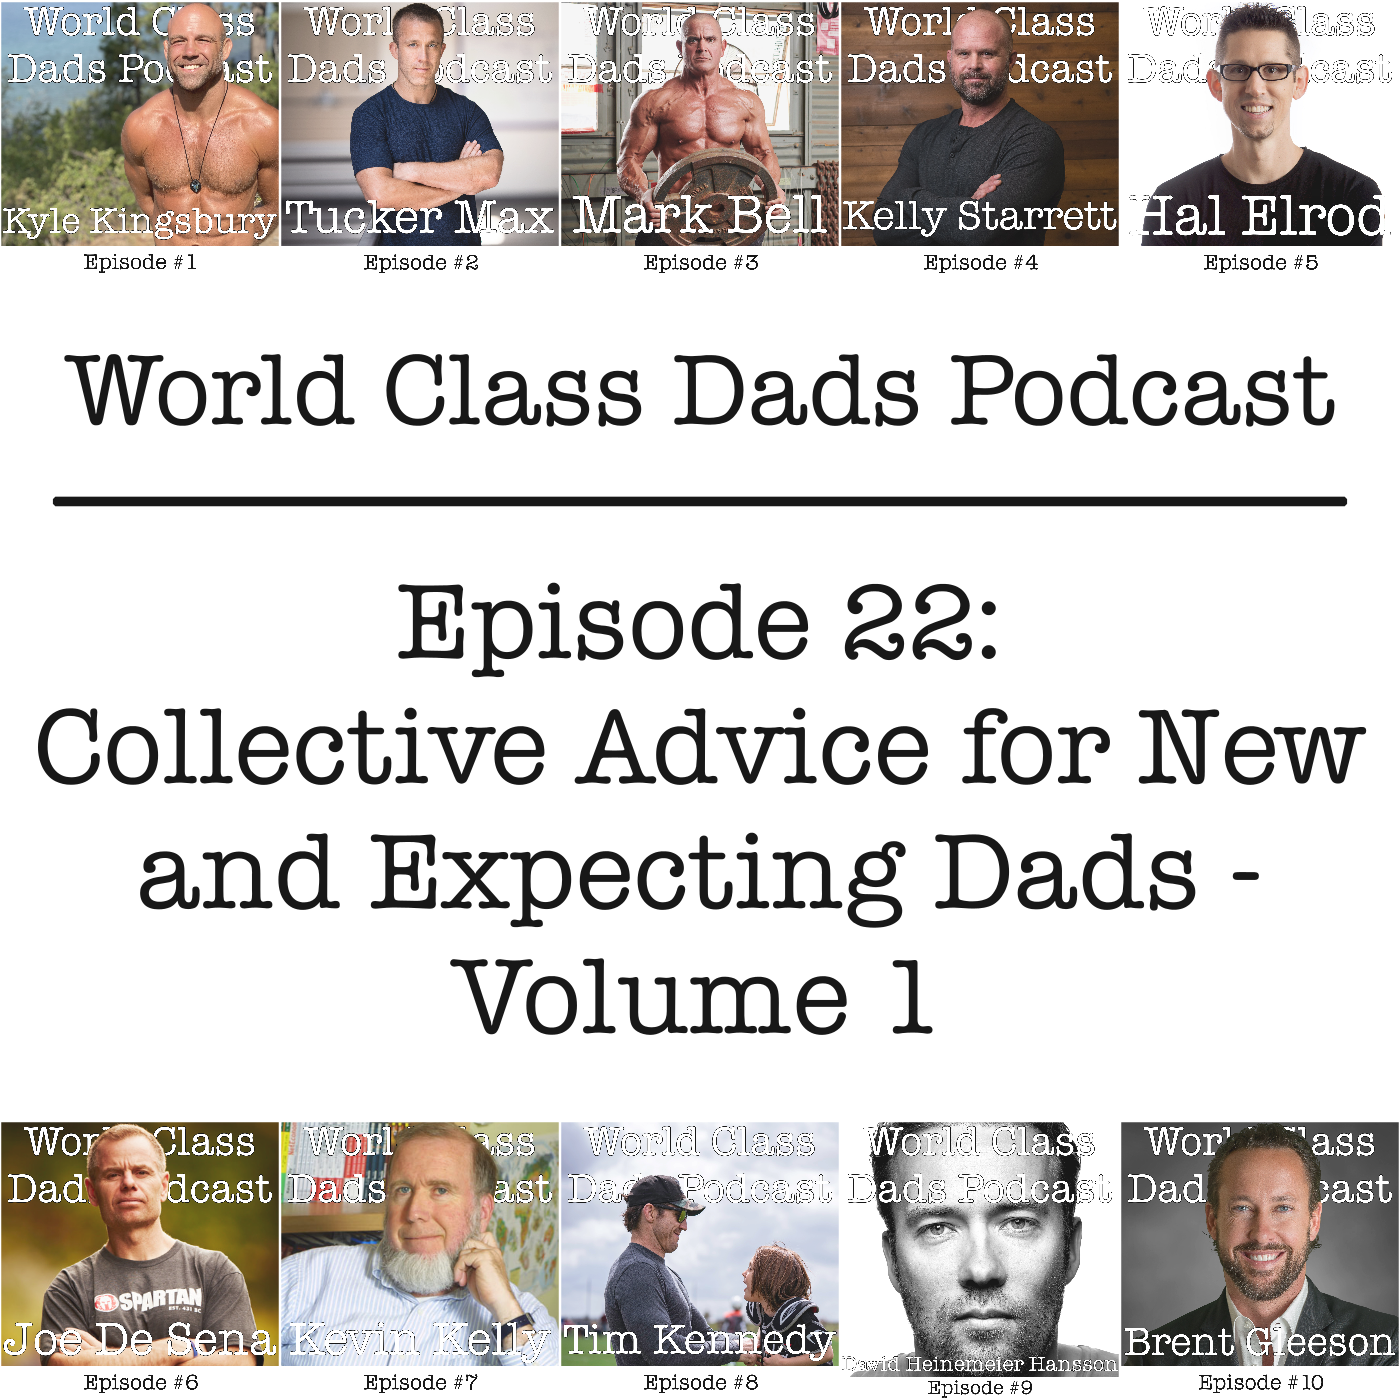 Collective Advice for New and Expecting Dads - Volume 1